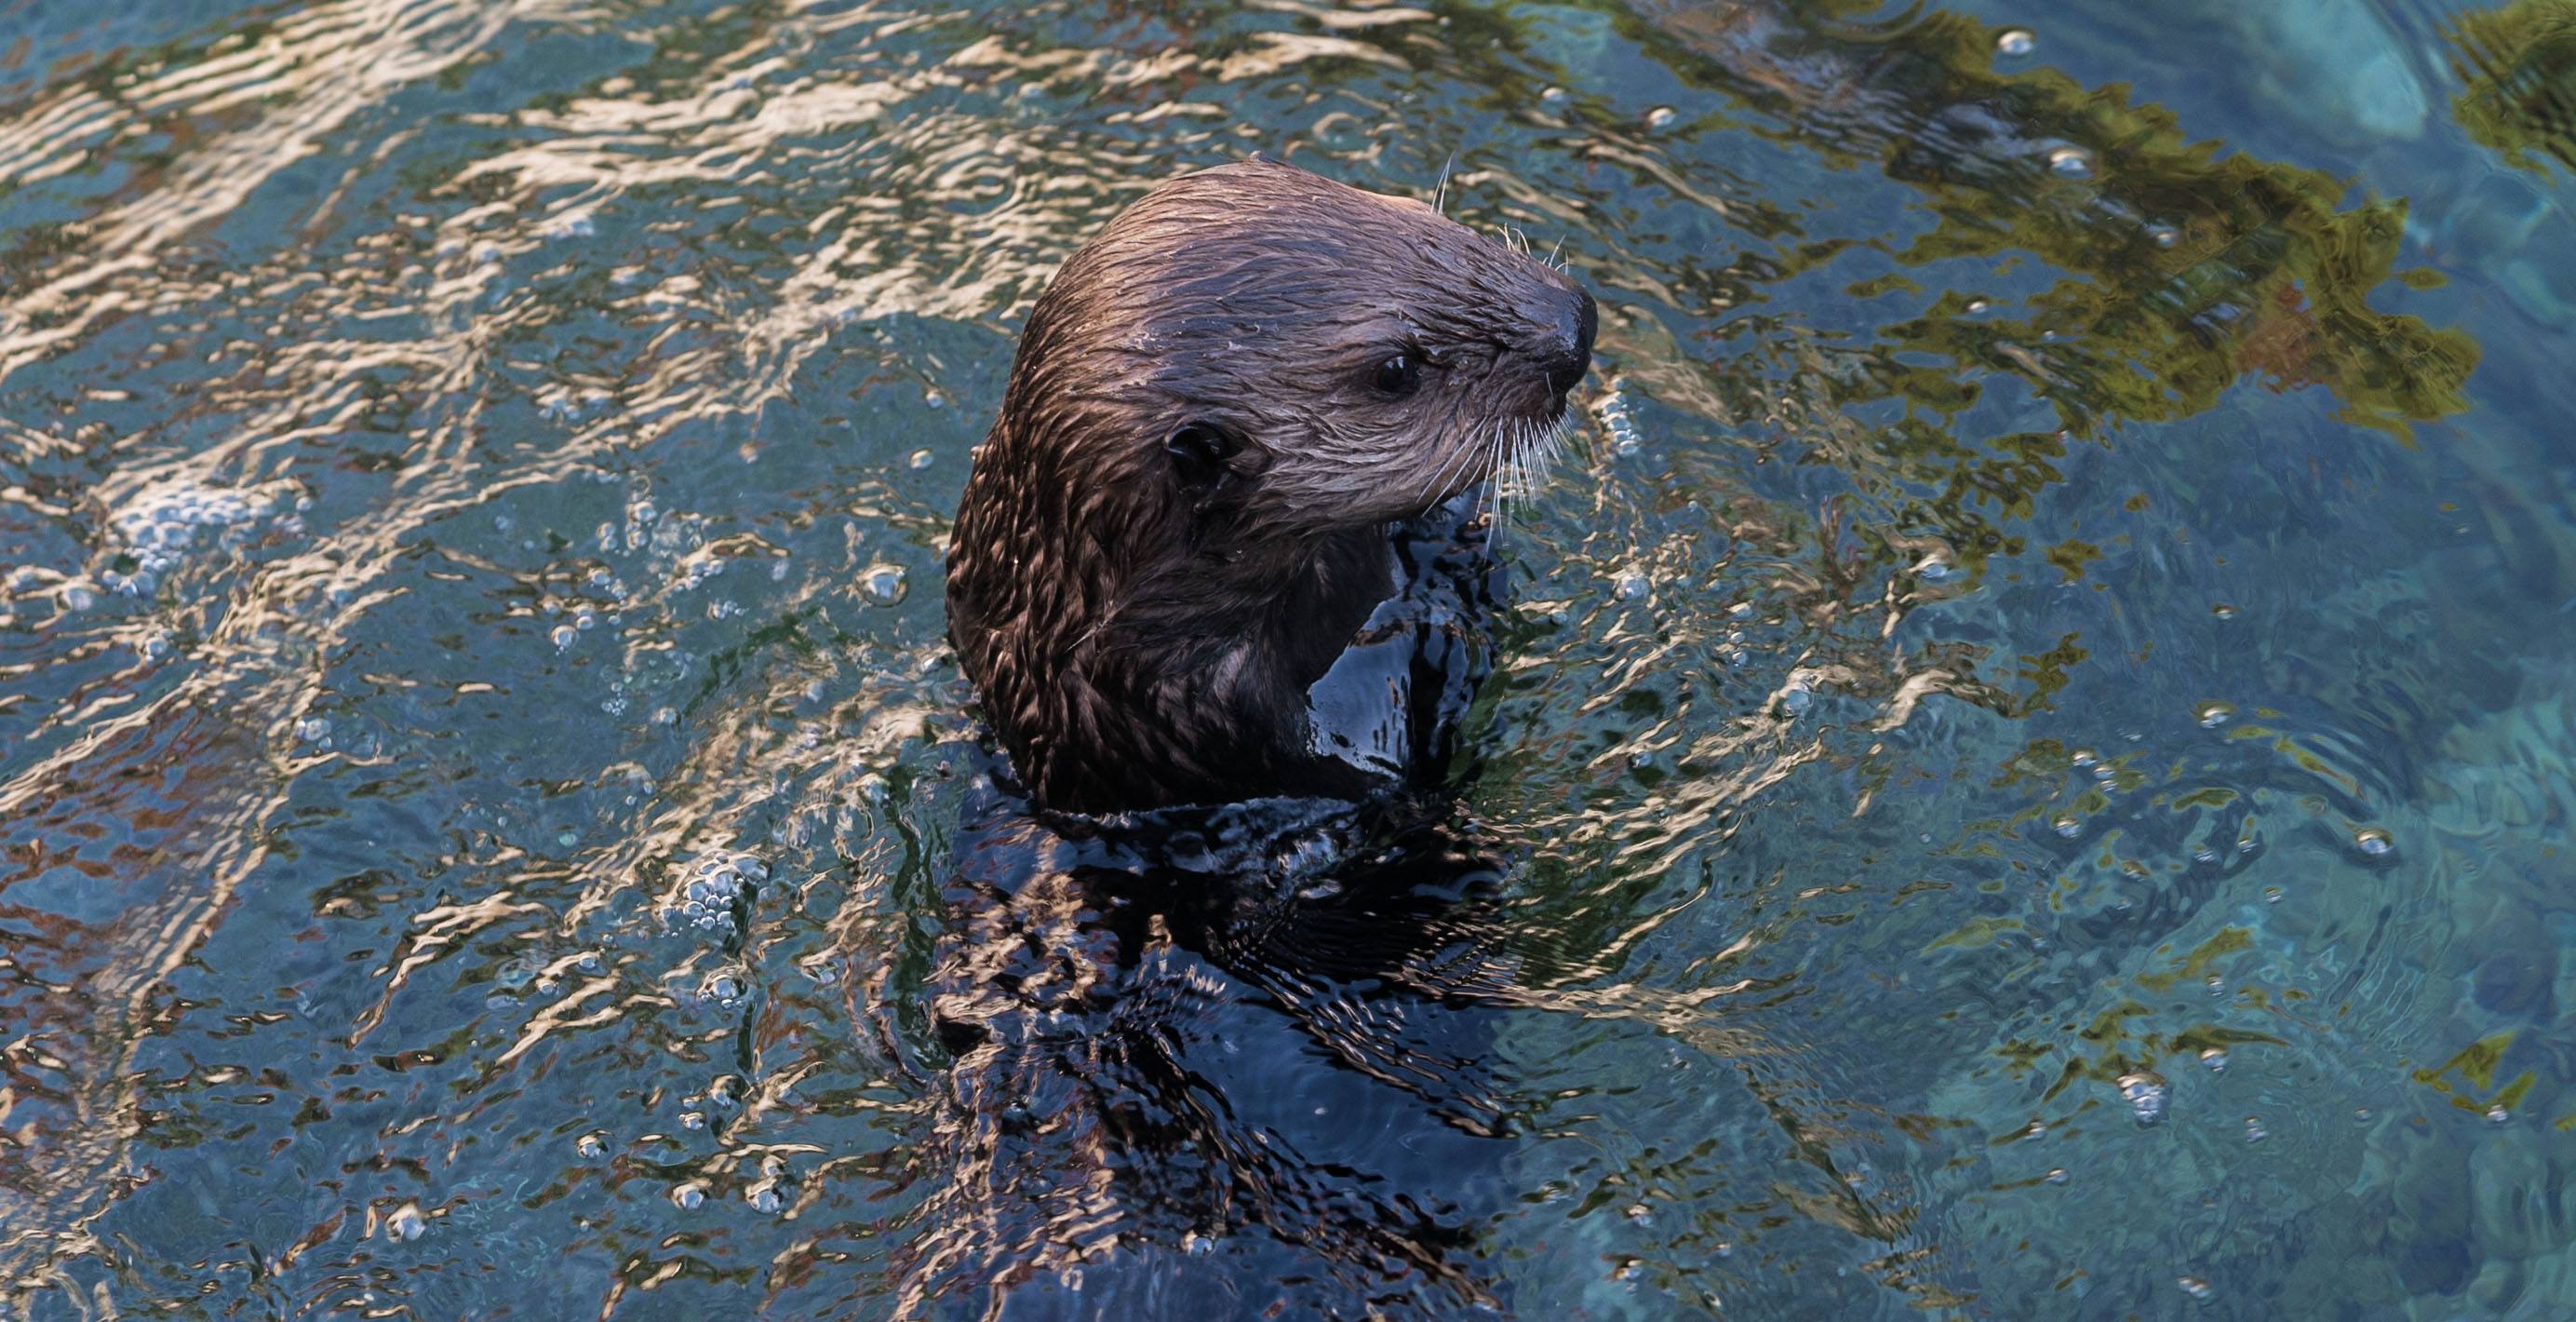 Hardy sees Tanu for the first time (Vancouver Aquarium)